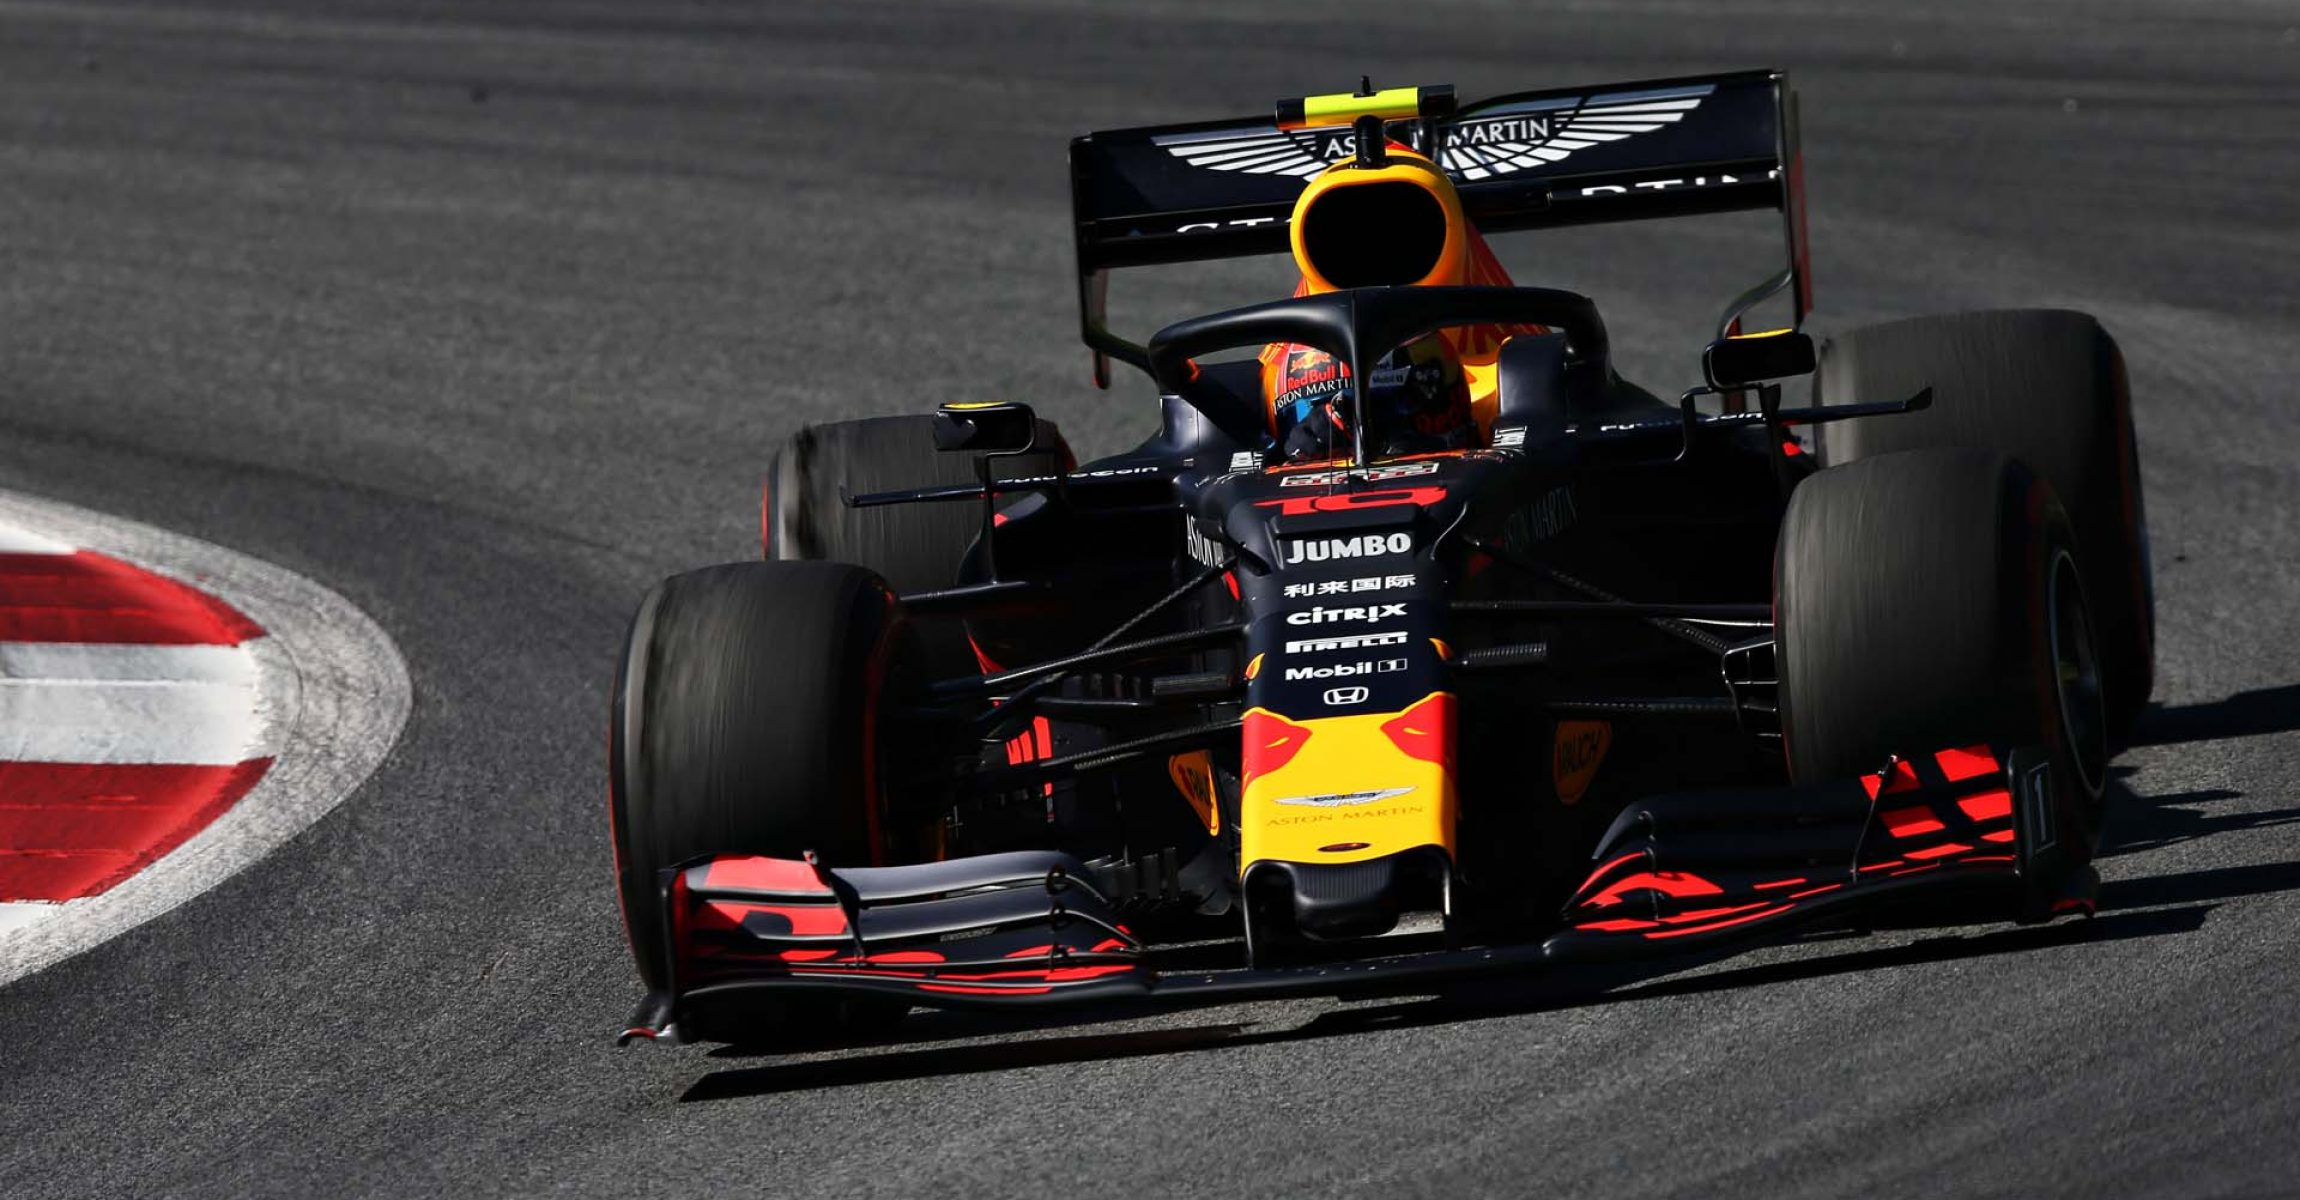 SPIELBERG, AUSTRIA - JUNE 28: Pierre Gasly of France driving the (10) Aston Martin Red Bull Racing RB15 on track during practice for the F1 Grand Prix of Austria at Red Bull Ring on June 28, 2019 in Spielberg, Austria. (Photo by Charles Coates/Getty Images) // Getty Images / Red Bull Content Pool // AP-1ZSMXRUUH2111 // Usage for editorial use only // Please go to www.redbullcontentpool.com for further information. //